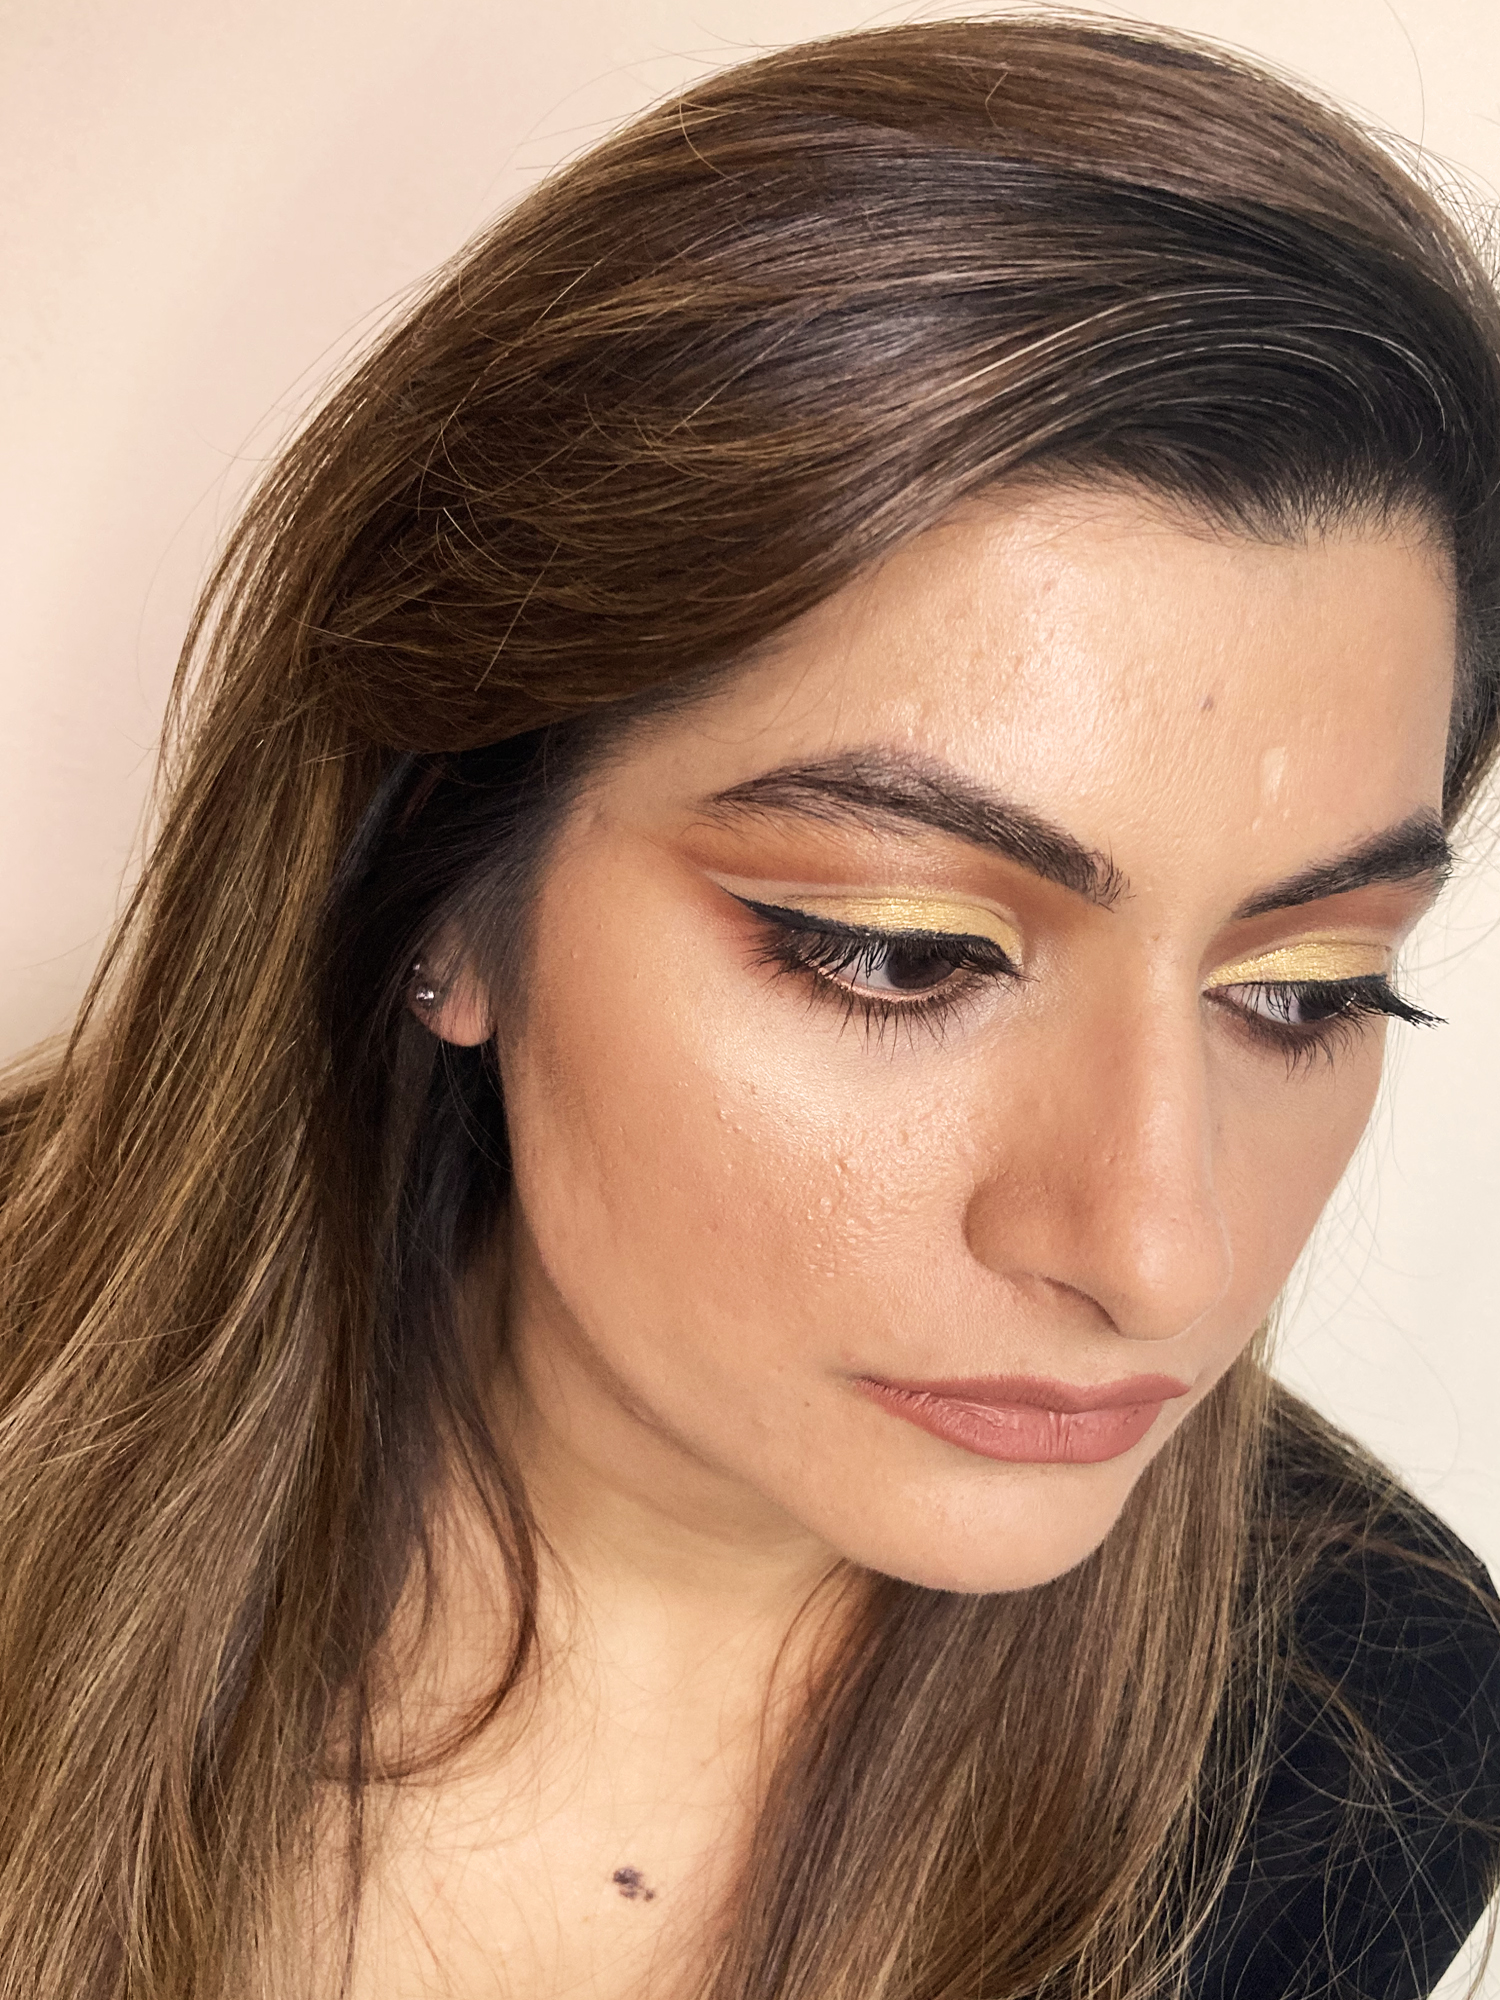 My First Ever Cut Crease! - 5